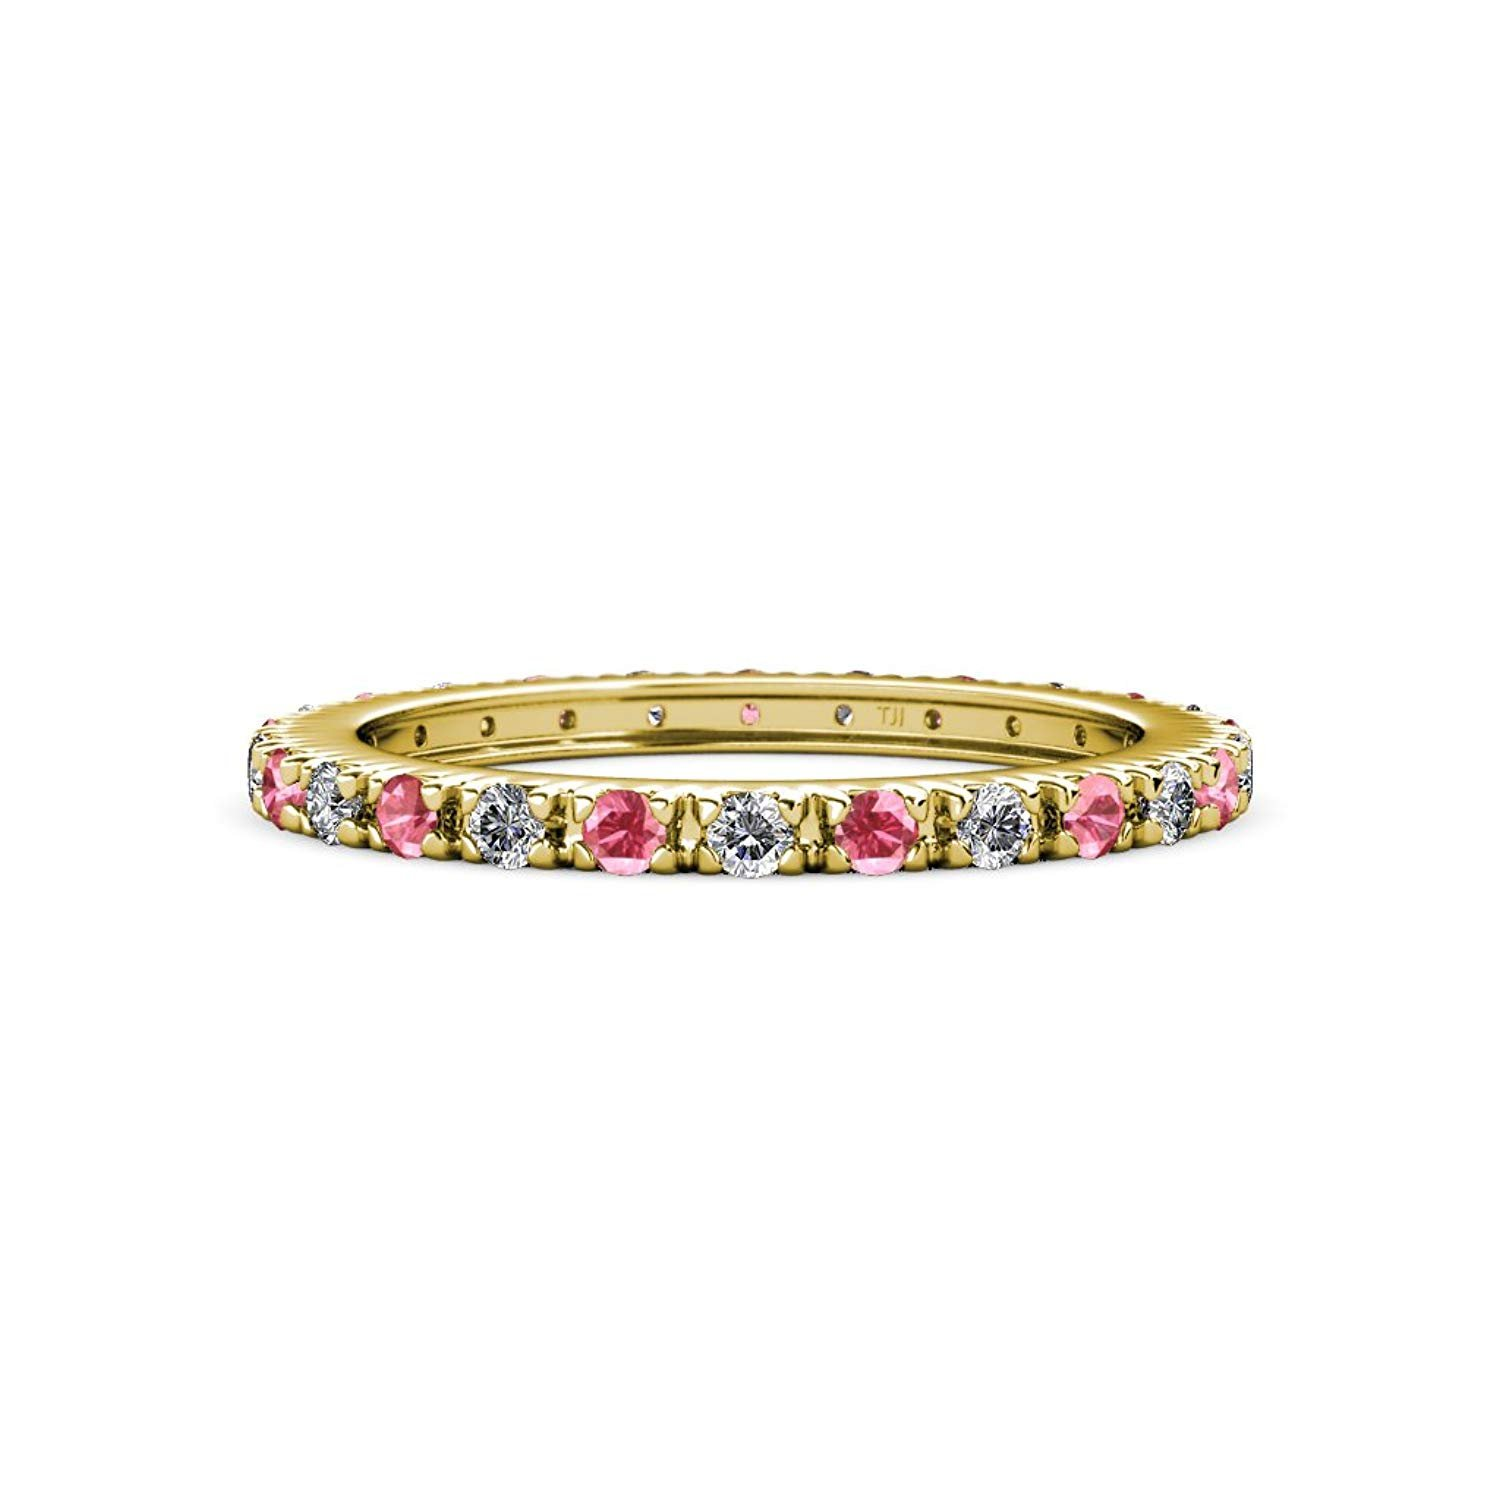 Pink Tourmaline and Diamond French Set Eternity Band 0.60 ct tw to 0.73 ct tw in 14K Rose Gold.size 5.0 by TriJewels